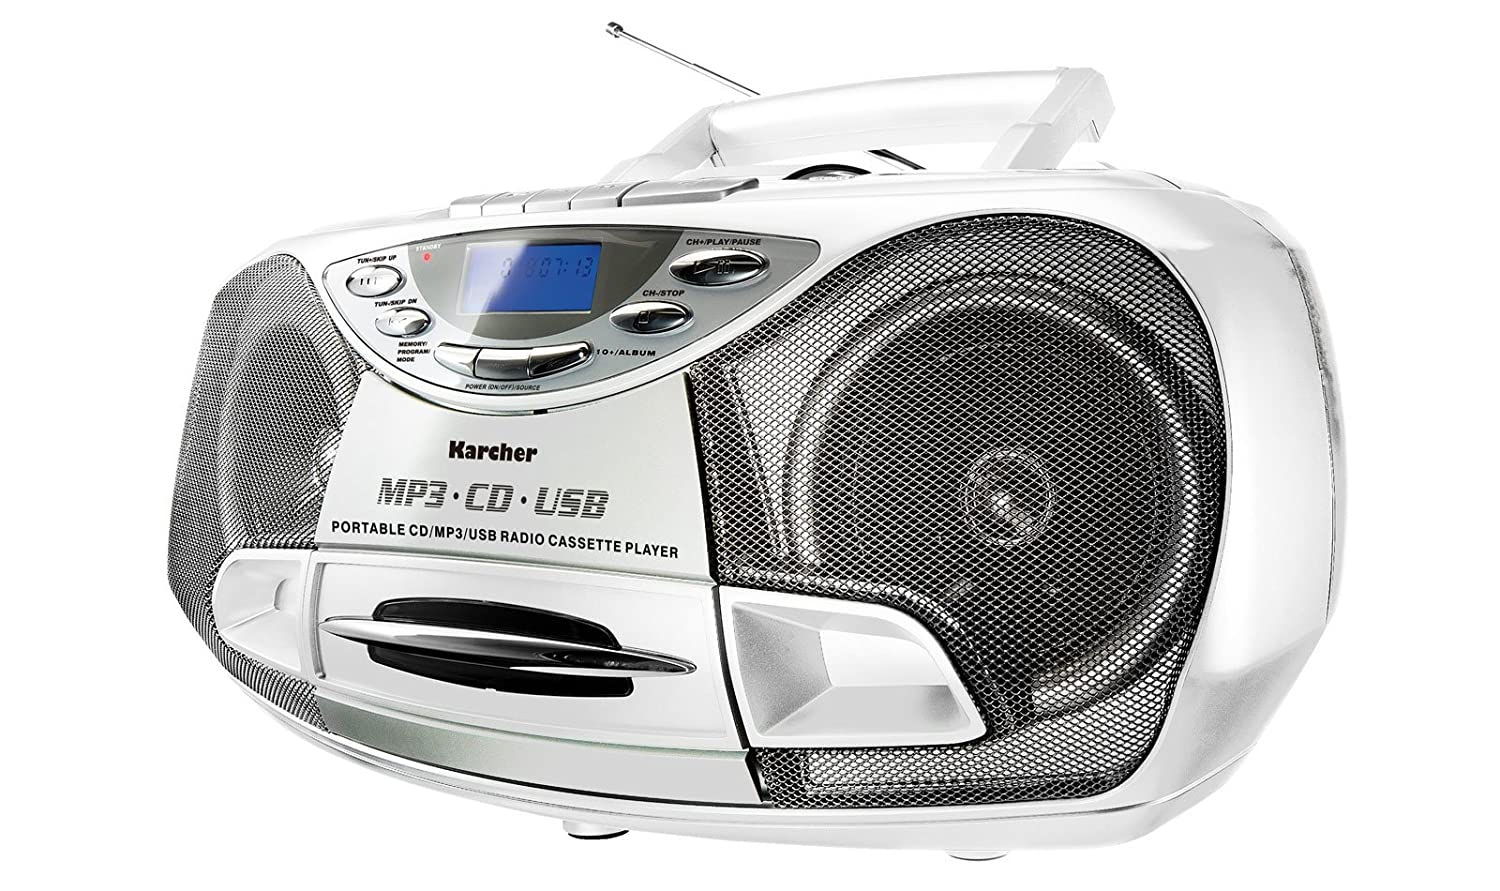 Karcher RR 510N Portable Radio CD Stéréo (Lecteur CD / MP3, Radio FM, Cassette, Lecture MP3, 100 Watt (PMPO), USB 2.0).